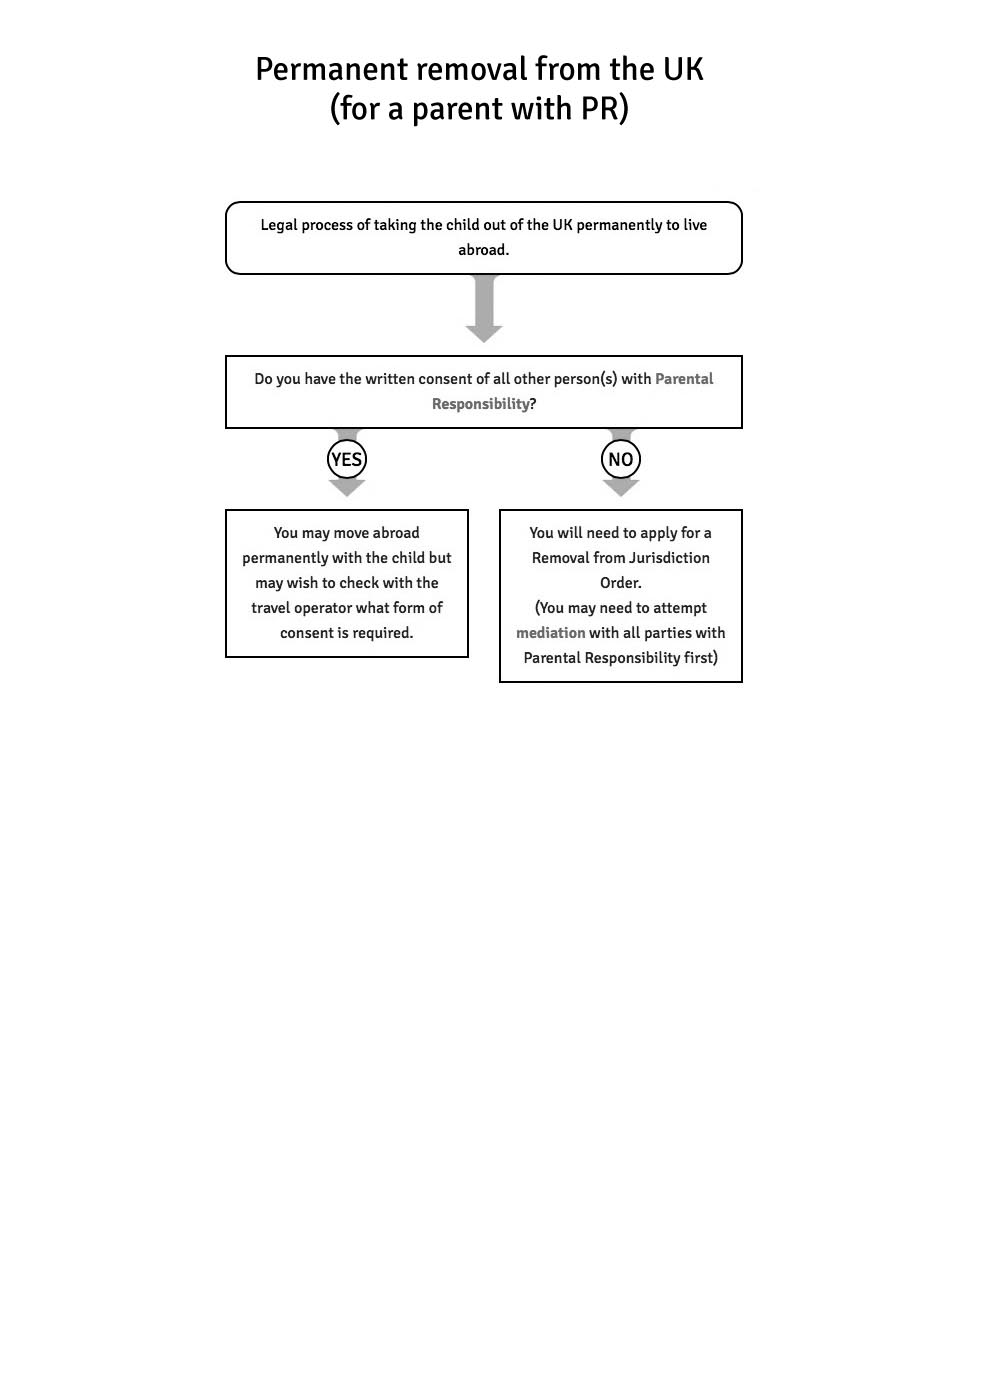 Permanent Removal From The Uk (for A Parent With Pr)  Flowchart